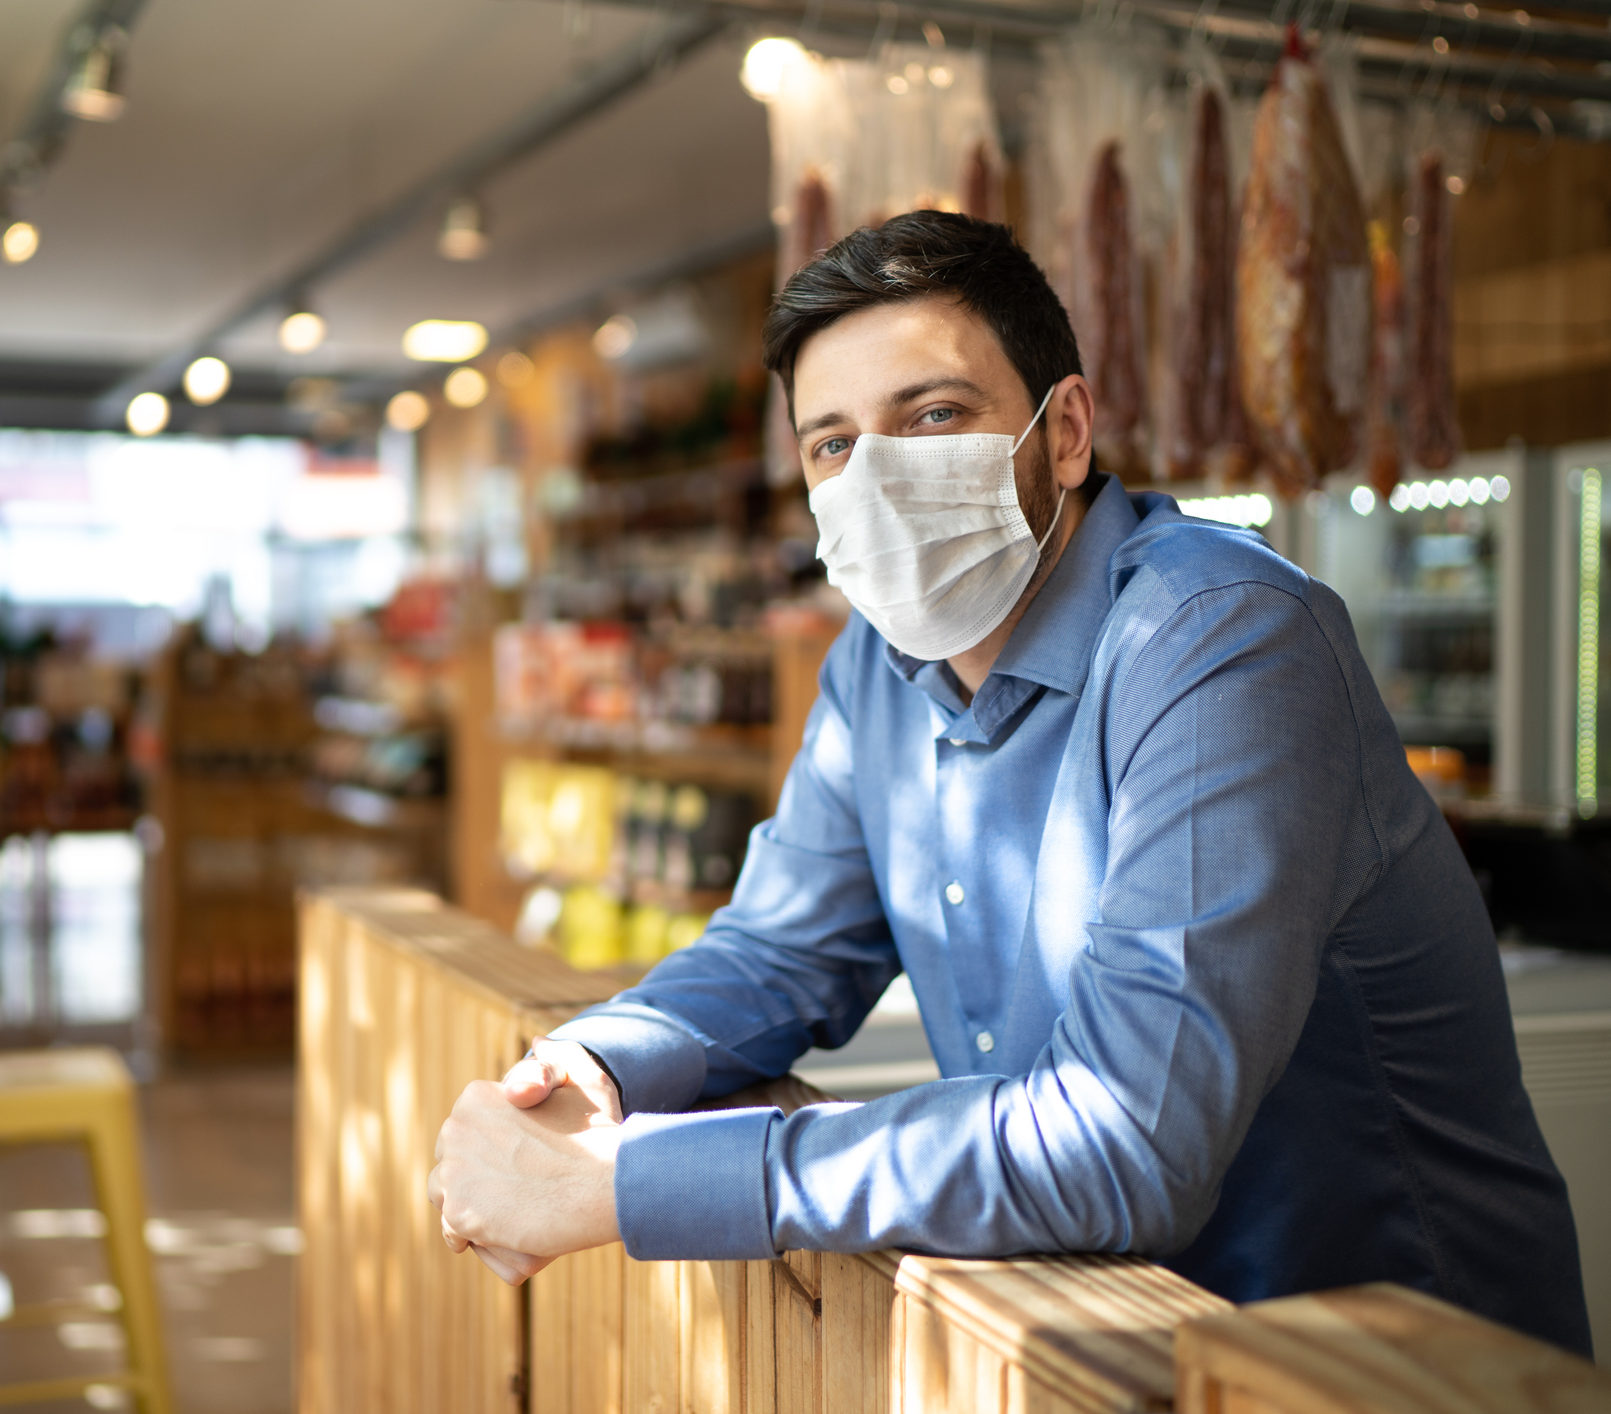 return to work at a wearhouse, wearing a facemask